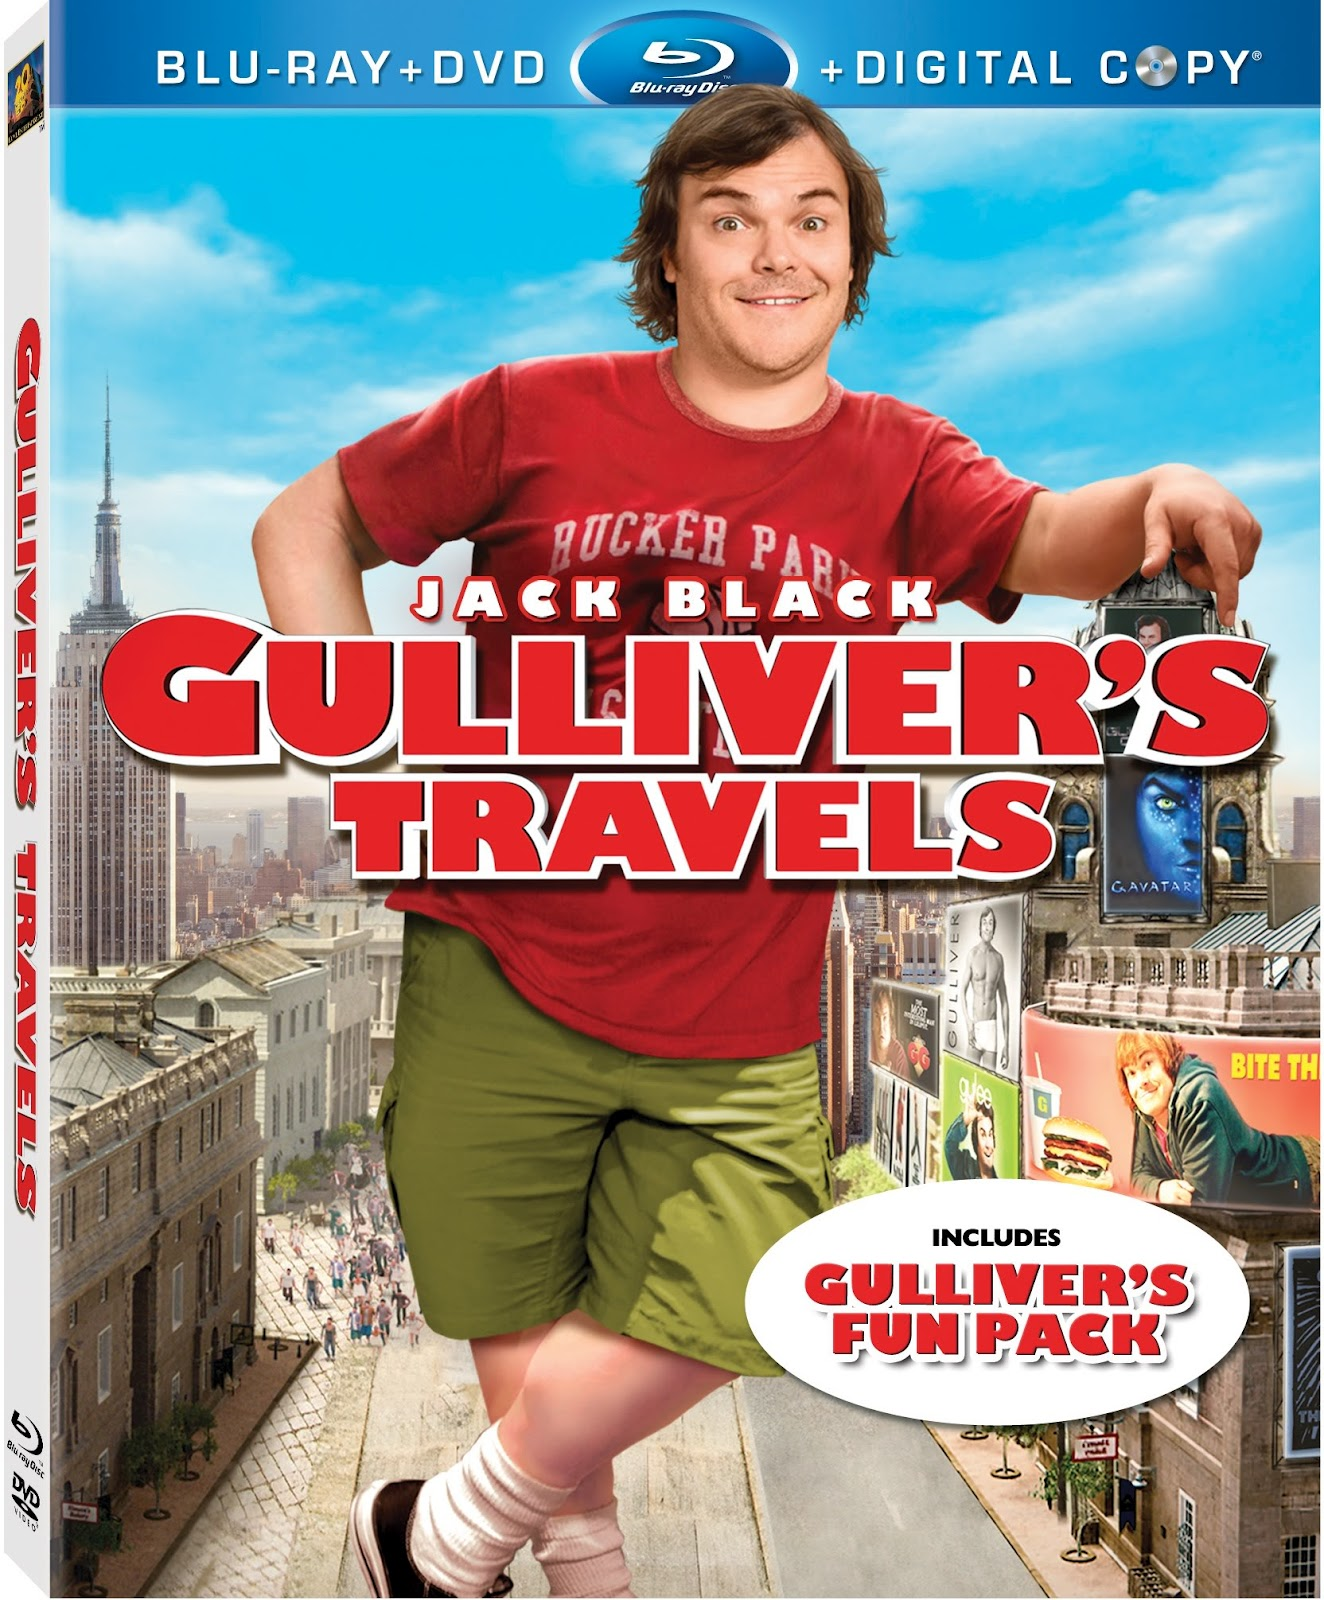 notes on gullivers travels Free summary and analysis of the events in jonathan swift's gulliver's travels that won't make you snore we promise.